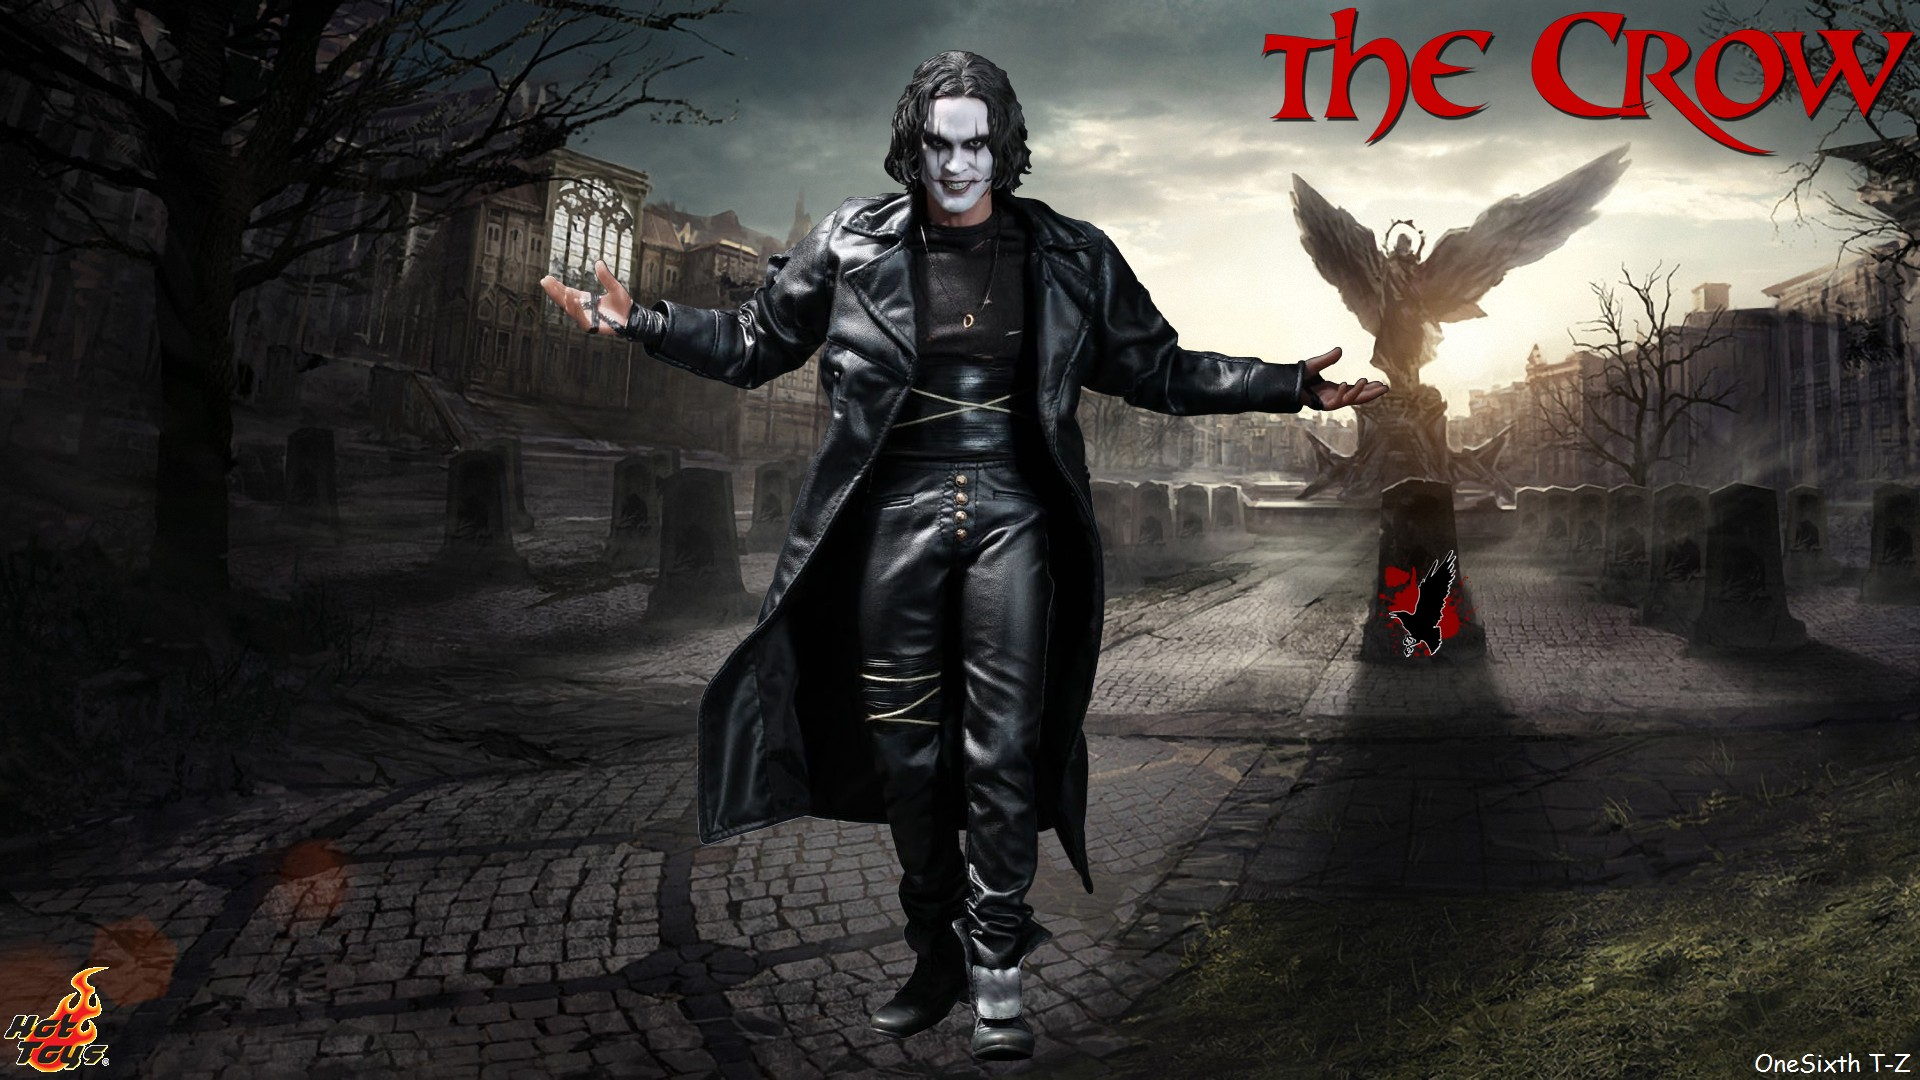 Crow hd wallpaper wallpapersafari - The crow wallpaper ...